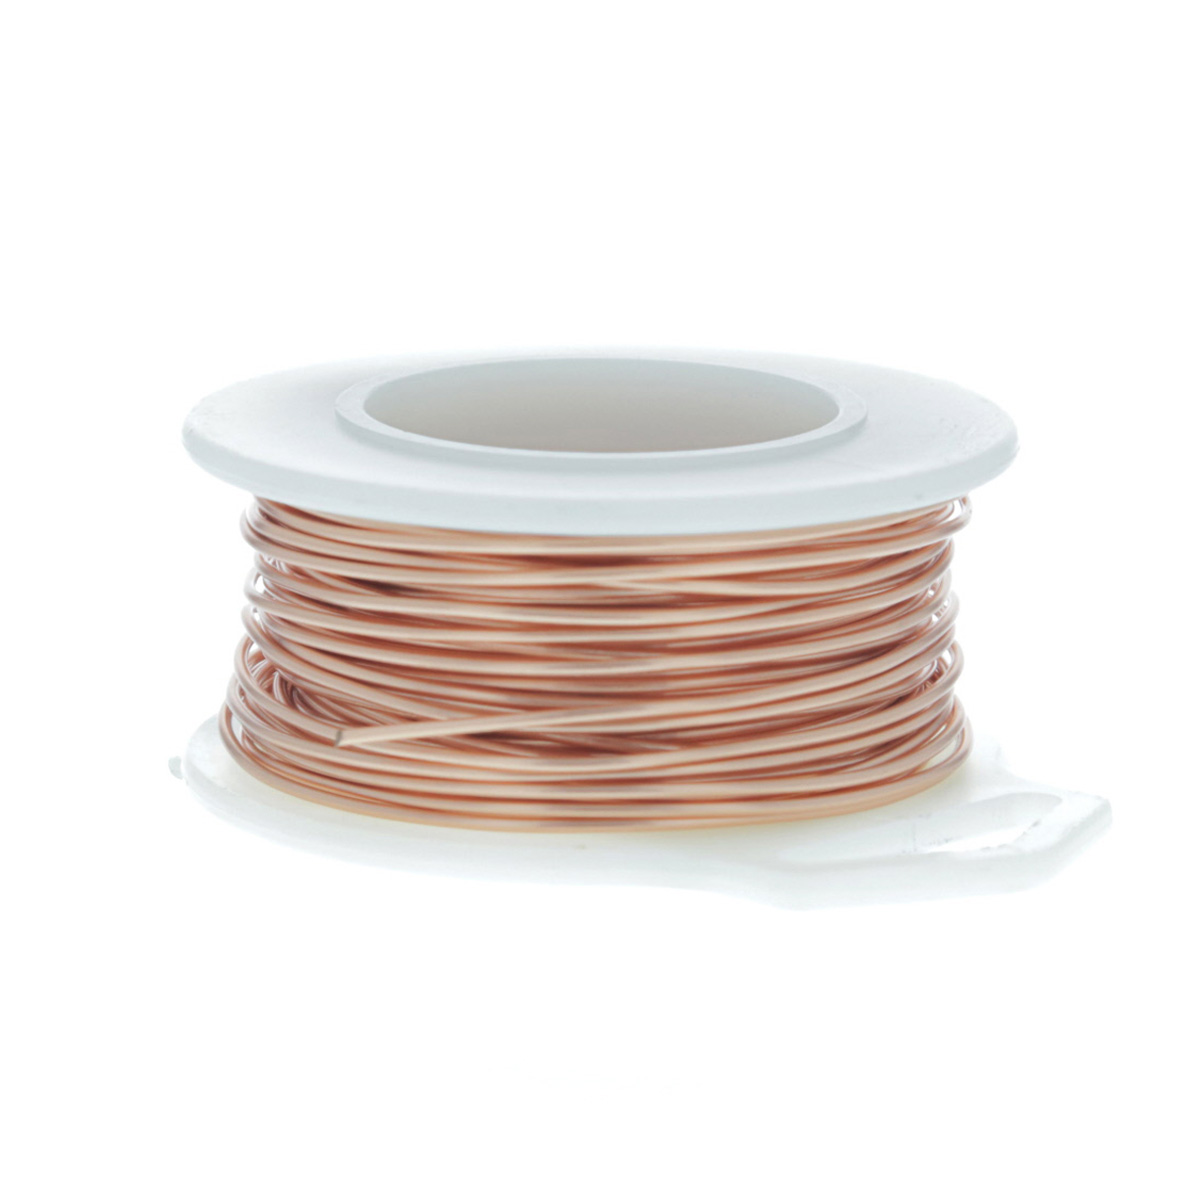 22 gauge round natural enameled craft wire 45 ft wire for 22 gauge craft wire